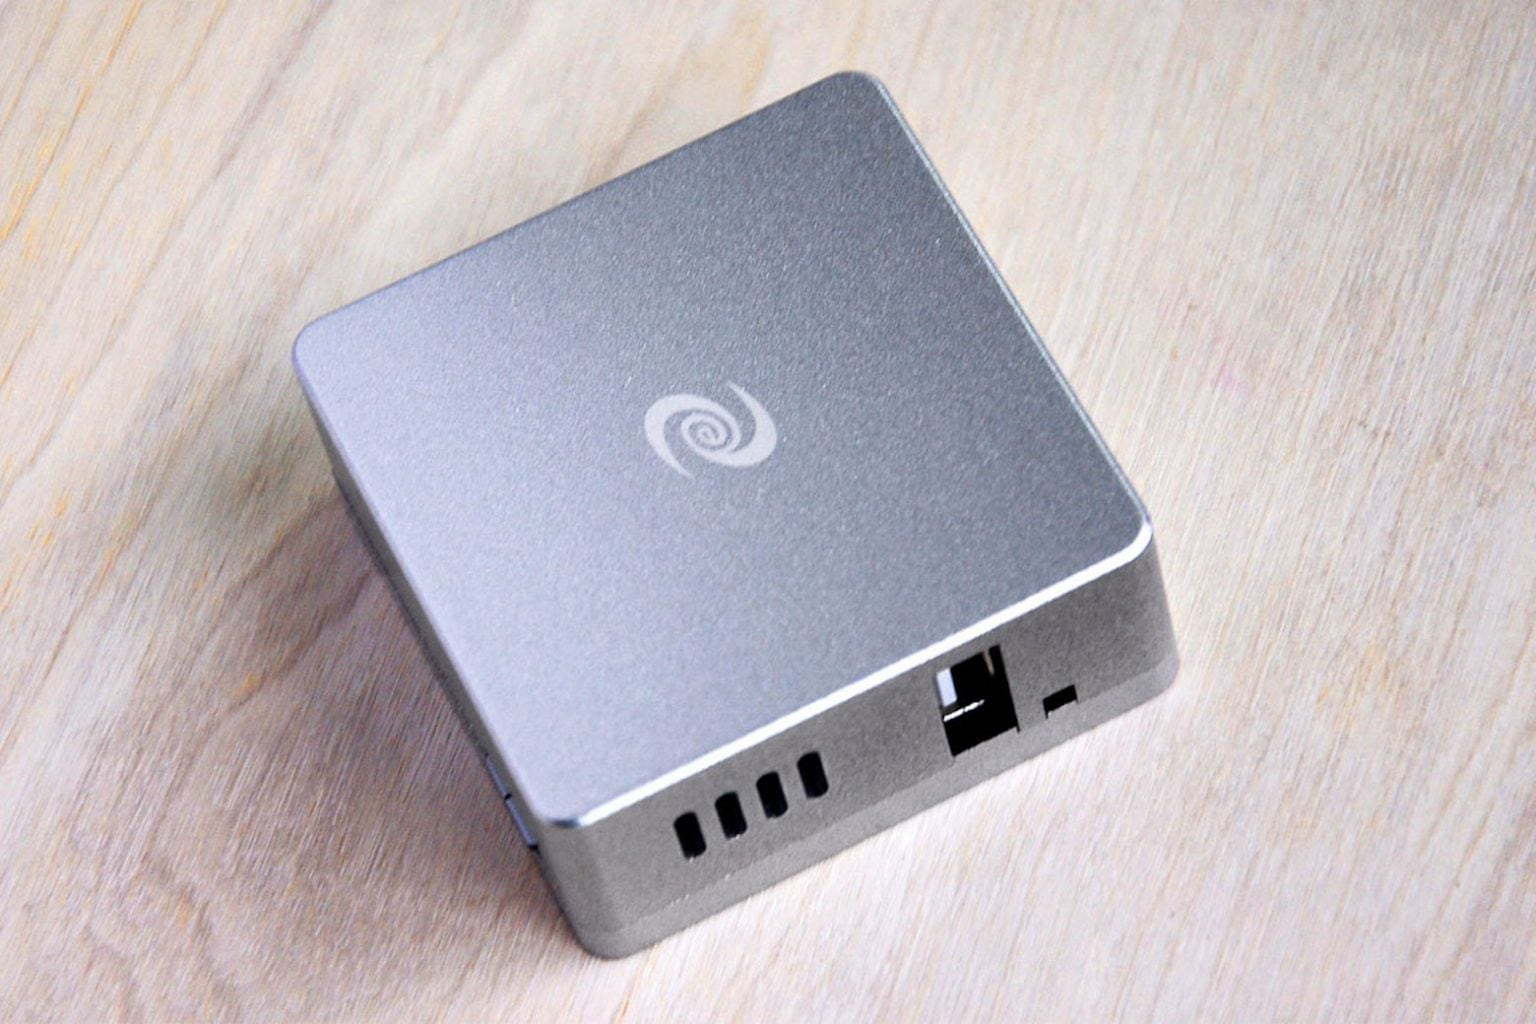 This smart dual VPN and firewall will protect your online data and your devices